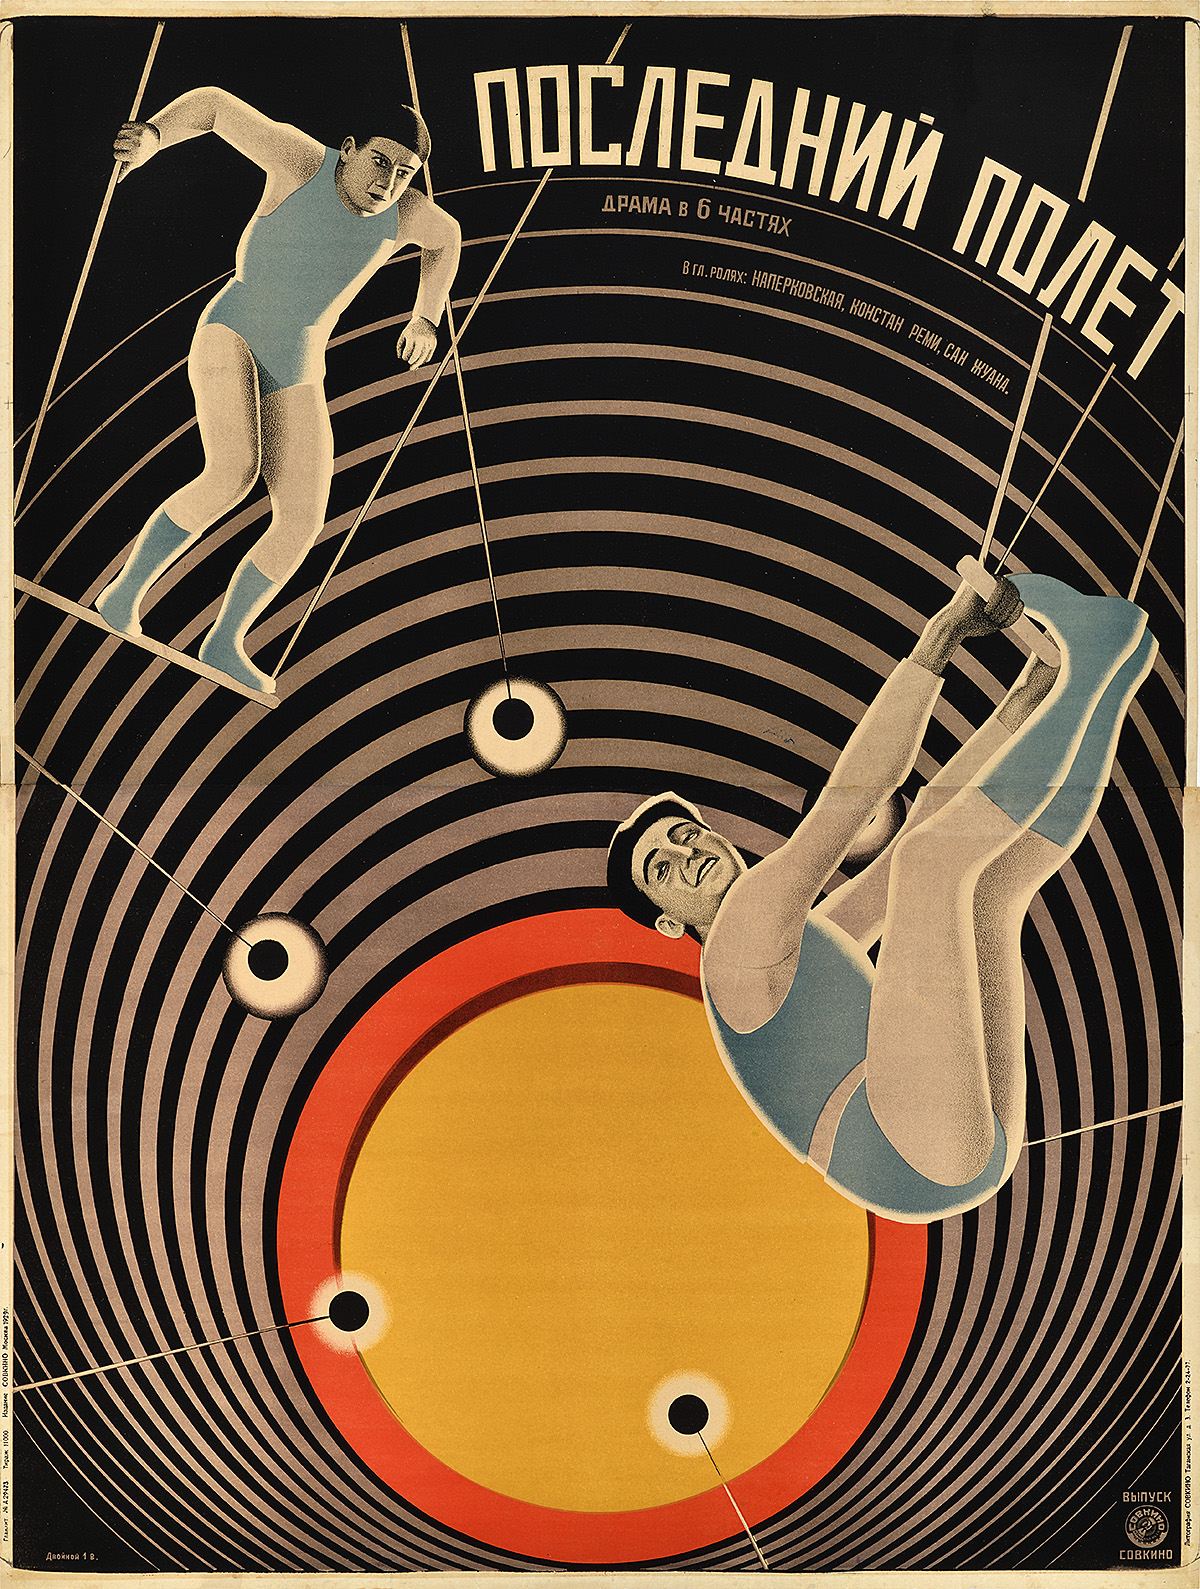 illustrational poster of two circus performers in blue costumes doing various trapeze acts